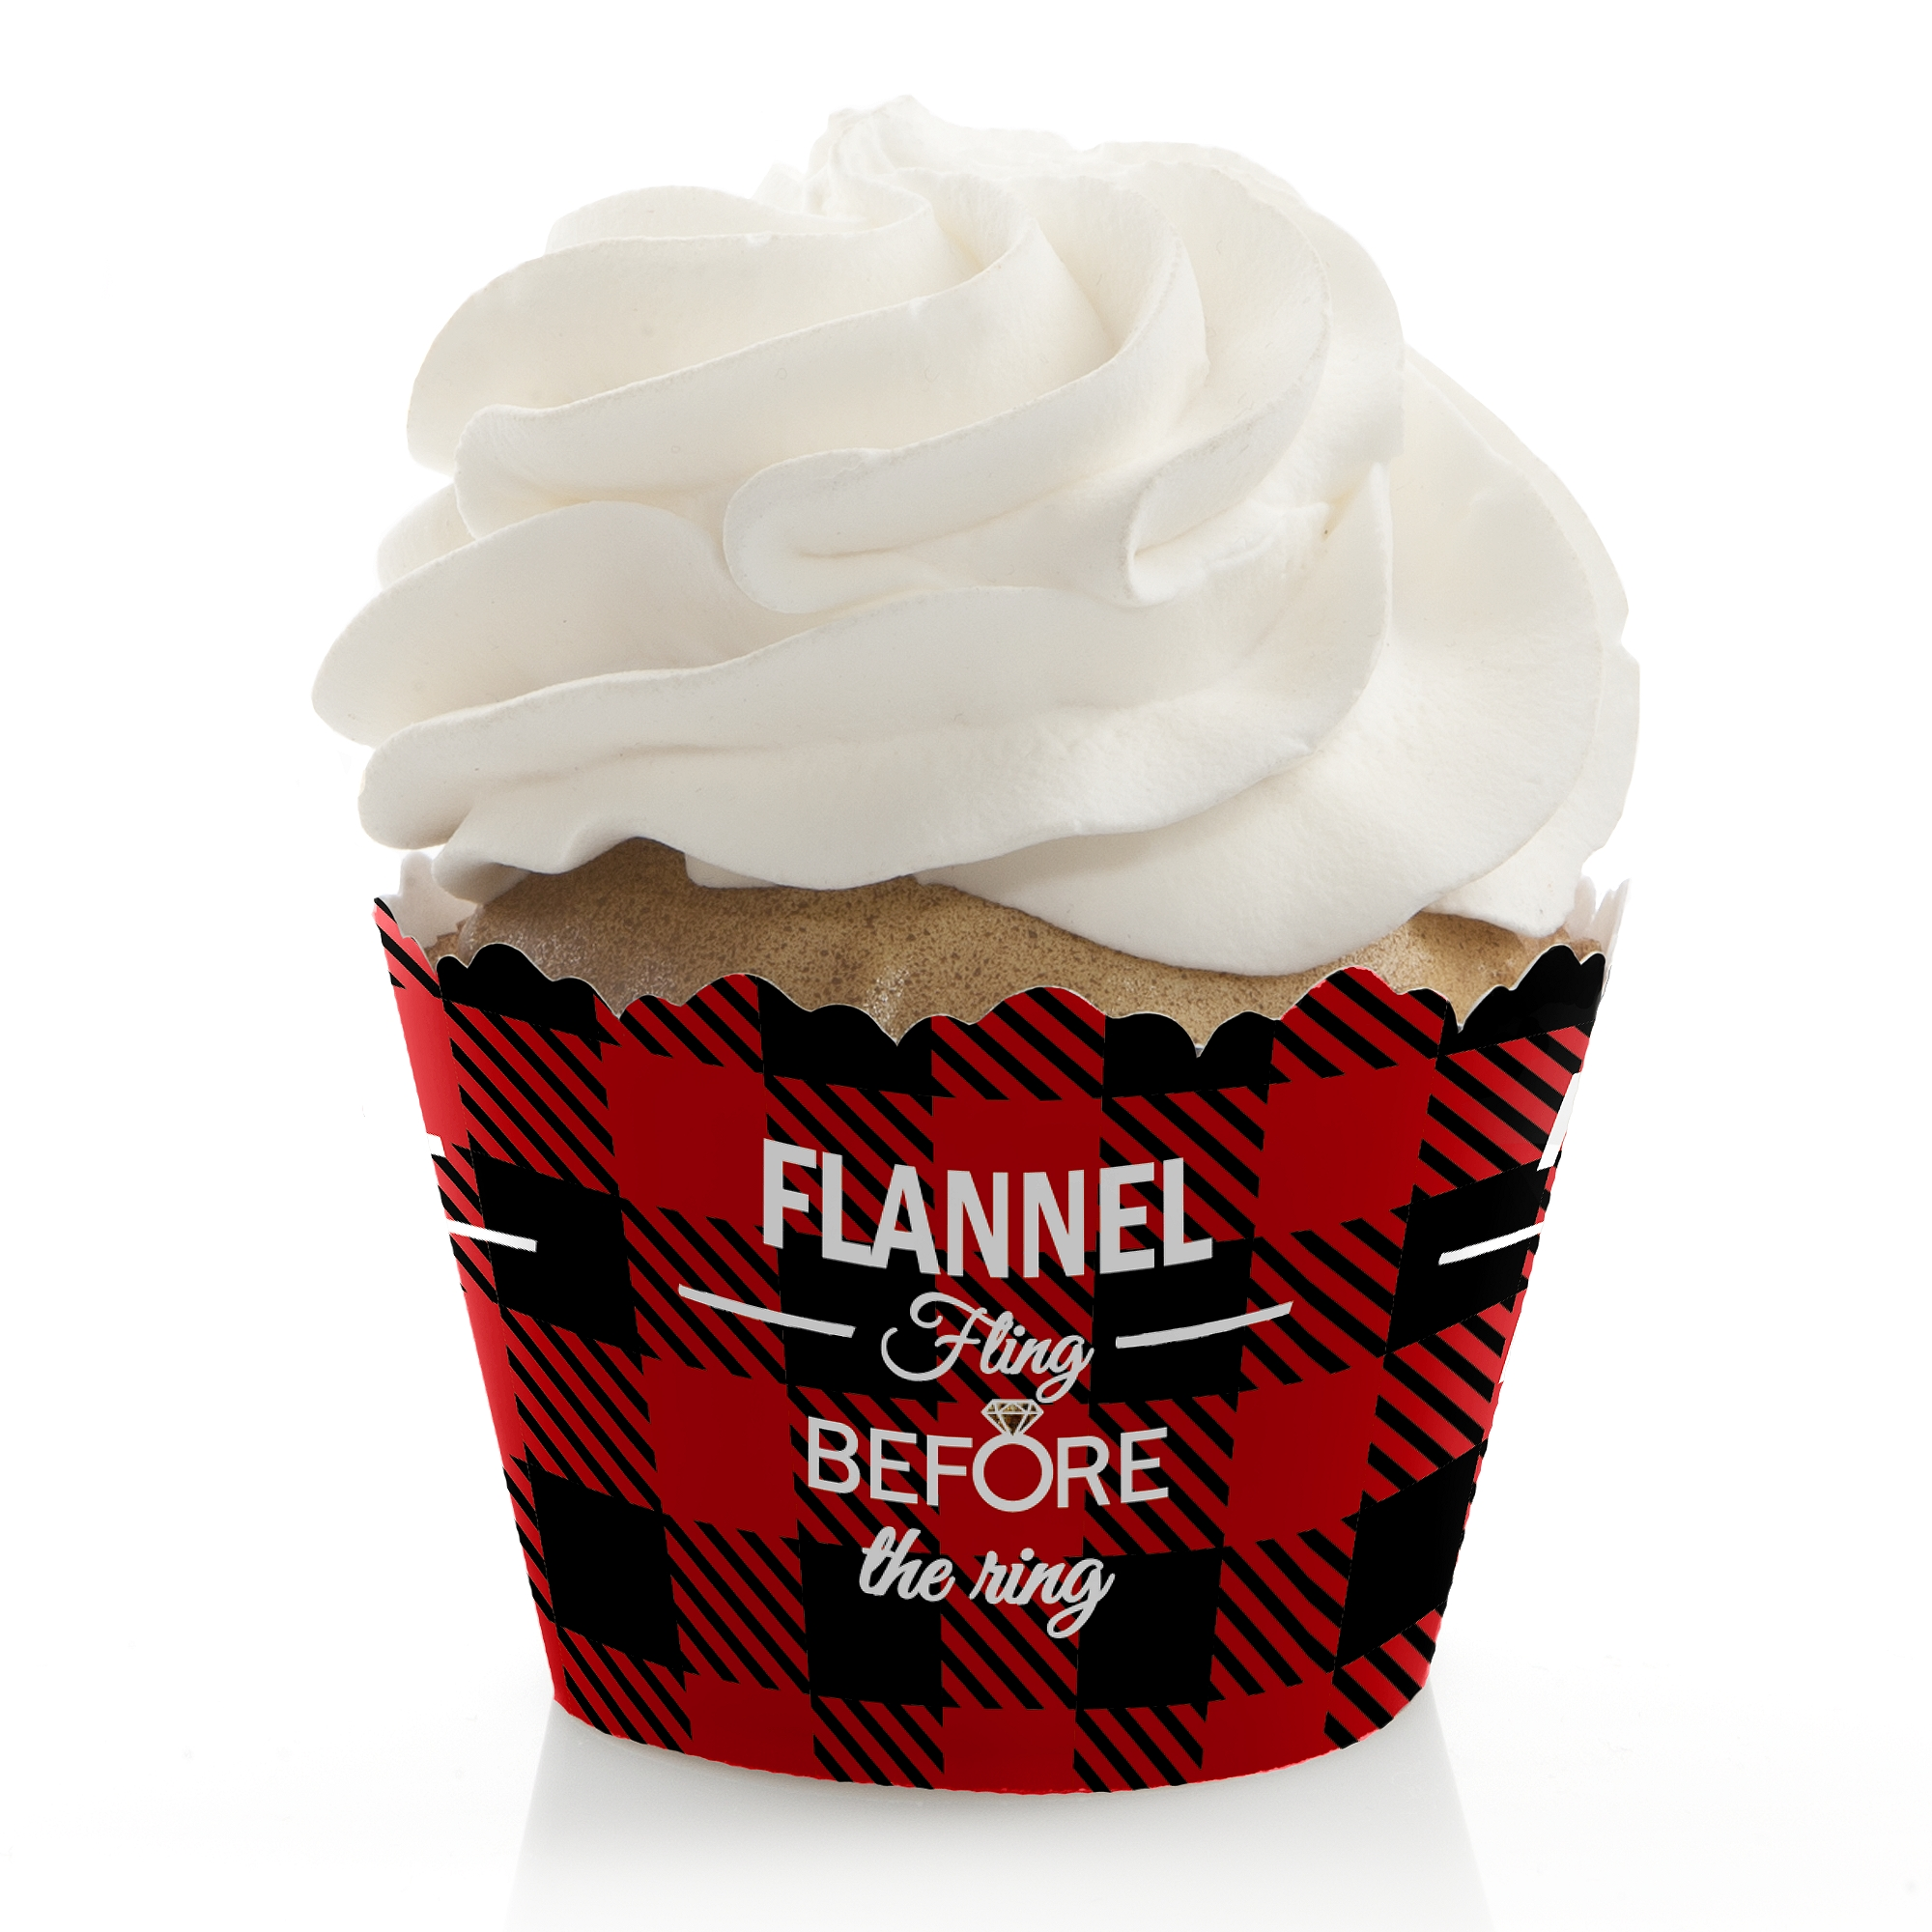 Flannel Fling Before The Ring - Buffalo Plaid Bachelorette Party Cupcake Wrappers - Set of 12